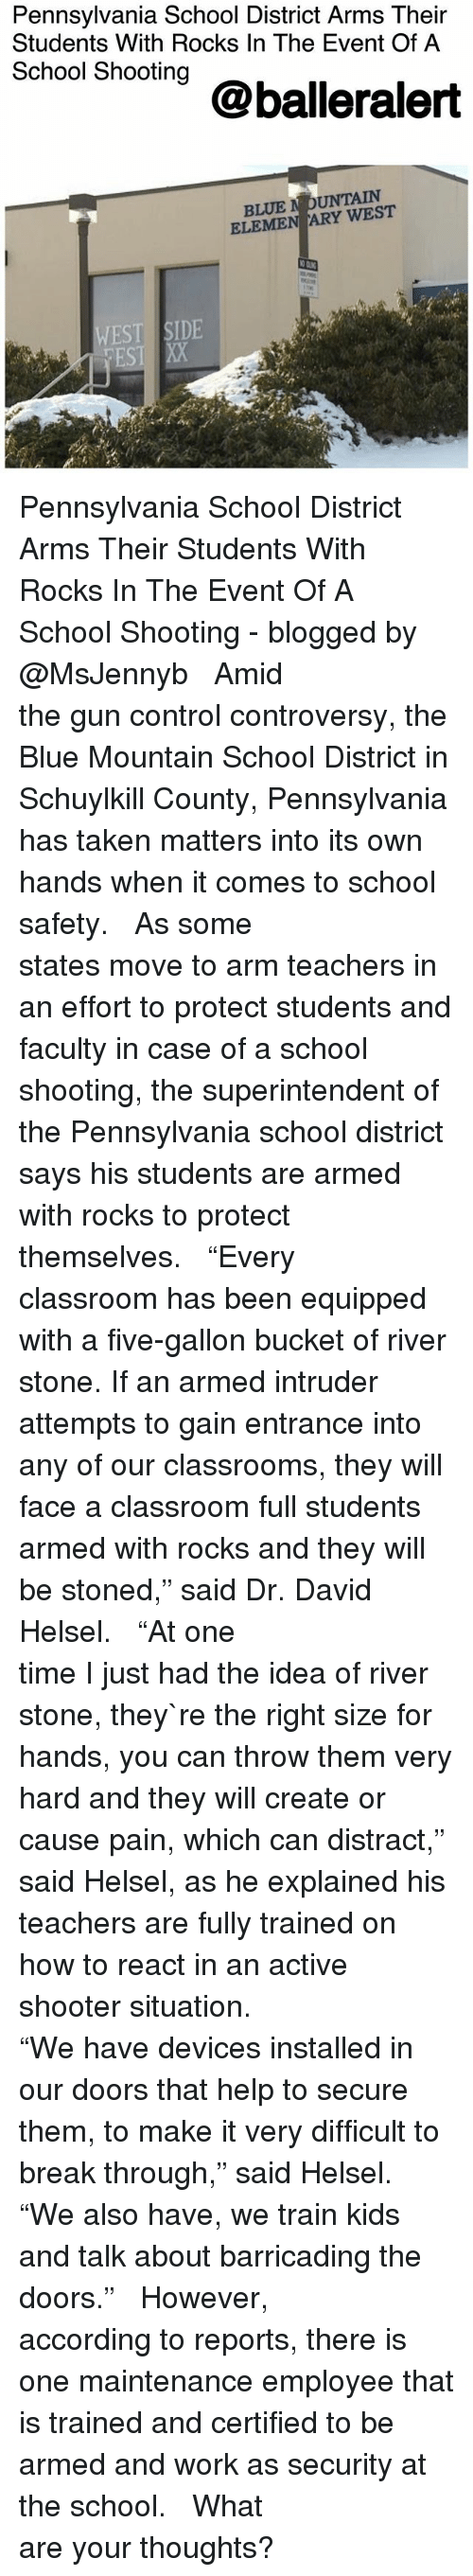 "Memes, School, and Taken: Pennsylvania School District Arms Their  Students With Rocks In The Event Of A  School Shooting  @balleralert  BLUE N OUNTAIN  ELEMEN ARY WEST  WEST SIDE  EST Pennsylvania School District Arms Their Students With Rocks In The Event Of A School Shooting - blogged by @MsJennyb ⠀⠀⠀⠀⠀⠀⠀⠀⠀ ⠀⠀⠀⠀⠀⠀⠀⠀⠀ Amid the gun control controversy, the Blue Mountain School District in Schuylkill County, Pennsylvania has taken matters into its own hands when it comes to school safety. ⠀⠀⠀⠀⠀⠀⠀⠀⠀ ⠀⠀⠀⠀⠀⠀⠀⠀⠀ As some states move to arm teachers in an effort to protect students and faculty in case of a school shooting, the superintendent of the Pennsylvania school district says his students are armed with rocks to protect themselves. ⠀⠀⠀⠀⠀⠀⠀⠀⠀ ⠀⠀⠀⠀⠀⠀⠀⠀⠀ ""Every classroom has been equipped with a five-gallon bucket of river stone. If an armed intruder attempts to gain entrance into any of our classrooms, they will face a classroom full students armed with rocks and they will be stoned,"" said Dr. David Helsel. ⠀⠀⠀⠀⠀⠀⠀⠀⠀ ⠀⠀⠀⠀⠀⠀⠀⠀⠀ ""At one time I just had the idea of river stone, they`re the right size for hands, you can throw them very hard and they will create or cause pain, which can distract,"" said Helsel, as he explained his teachers are fully trained on how to react in an active shooter situation. ⠀⠀⠀⠀⠀⠀⠀⠀⠀ ⠀⠀⠀⠀⠀⠀⠀⠀⠀ ""We have devices installed in our doors that help to secure them, to make it very difficult to break through,"" said Helsel. ""We also have, we train kids and talk about barricading the doors."" ⠀⠀⠀⠀⠀⠀⠀⠀⠀ ⠀⠀⠀⠀⠀⠀⠀⠀⠀ However, according to reports, there is one maintenance employee that is trained and certified to be armed and work as security at the school. ⠀⠀⠀⠀⠀⠀⠀⠀⠀ ⠀⠀⠀⠀⠀⠀⠀⠀⠀ What are your thoughts?"